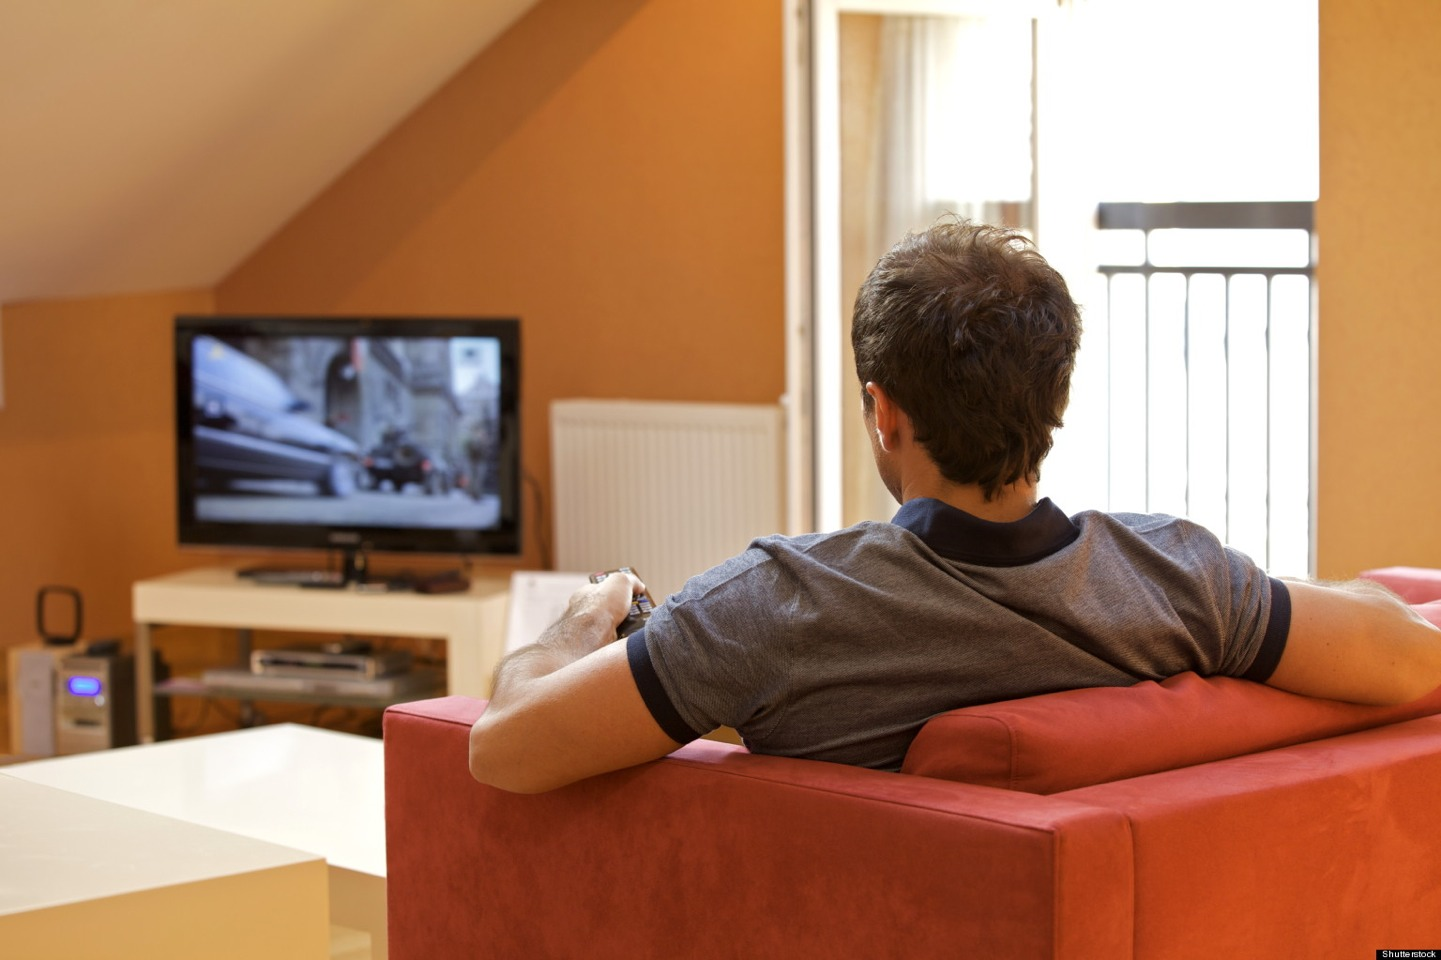 Watching tv: When you are eating while staring at the screen your mind is connected to what is happening in the program/video you are watching rather than focusing on the amount of food you intake.